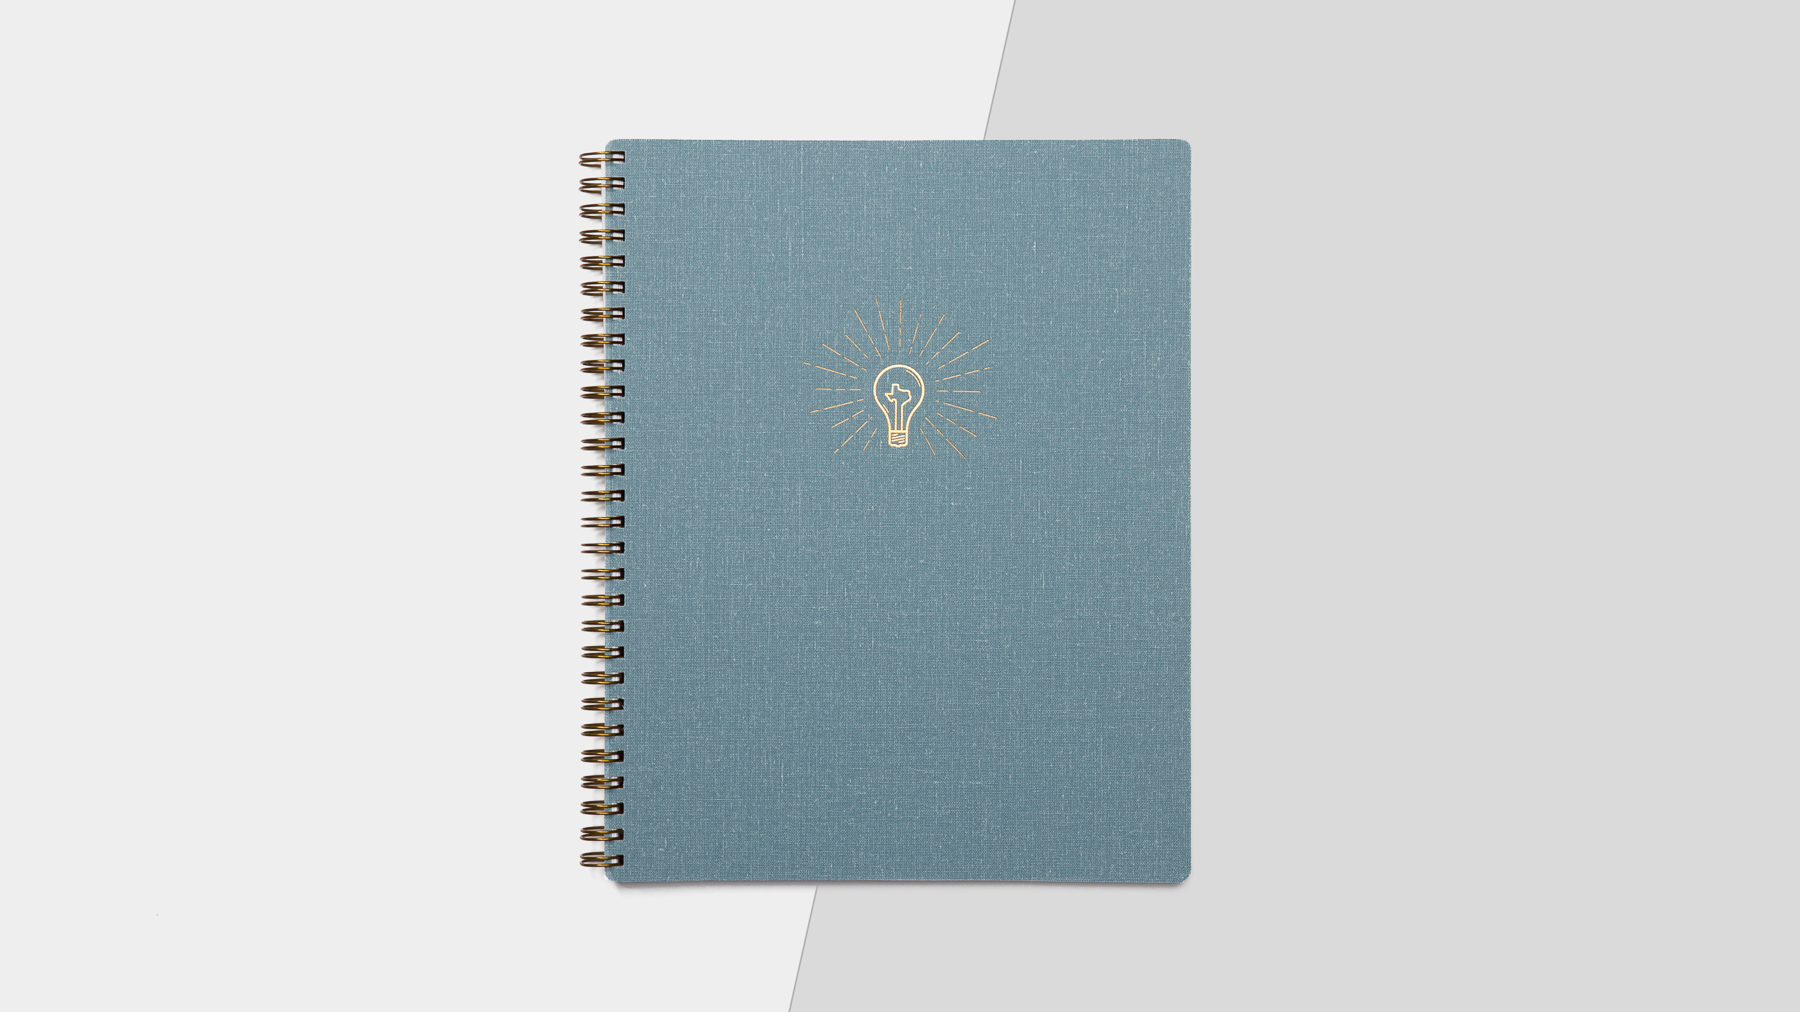 The Big Ideas Notebook. Collaboration with Appointed for No. 4 St. James.